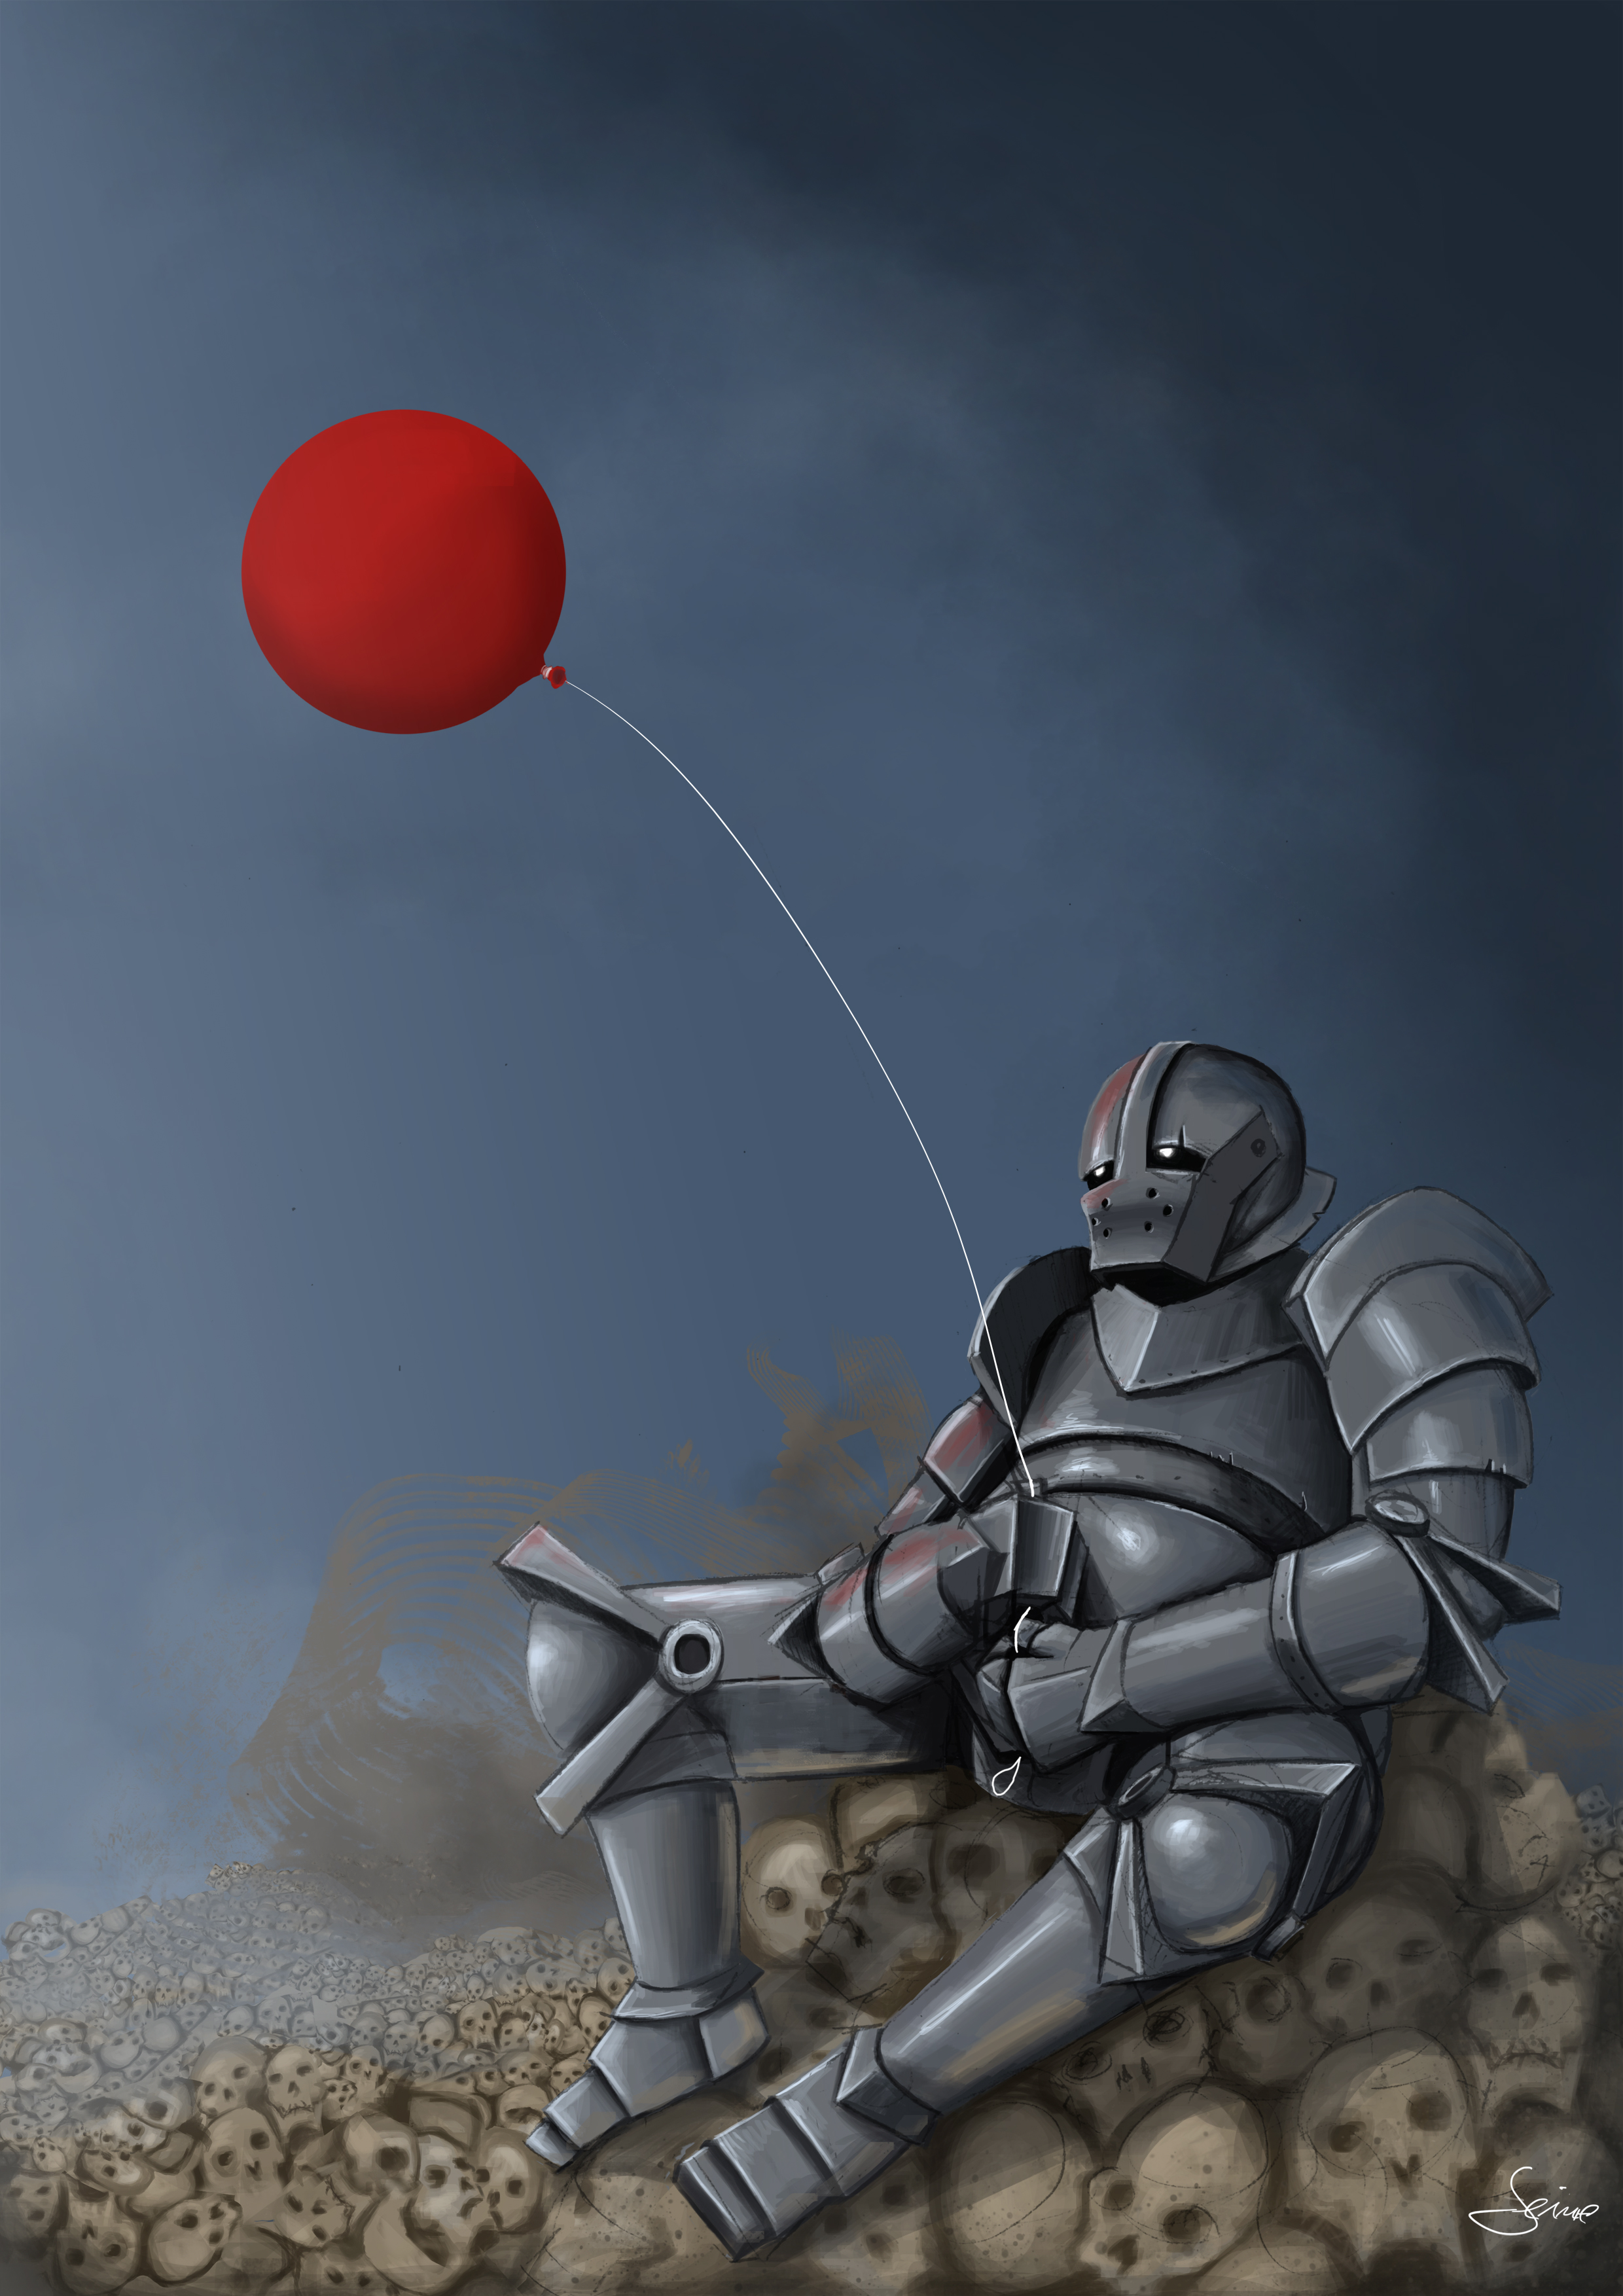 Balloon Knight